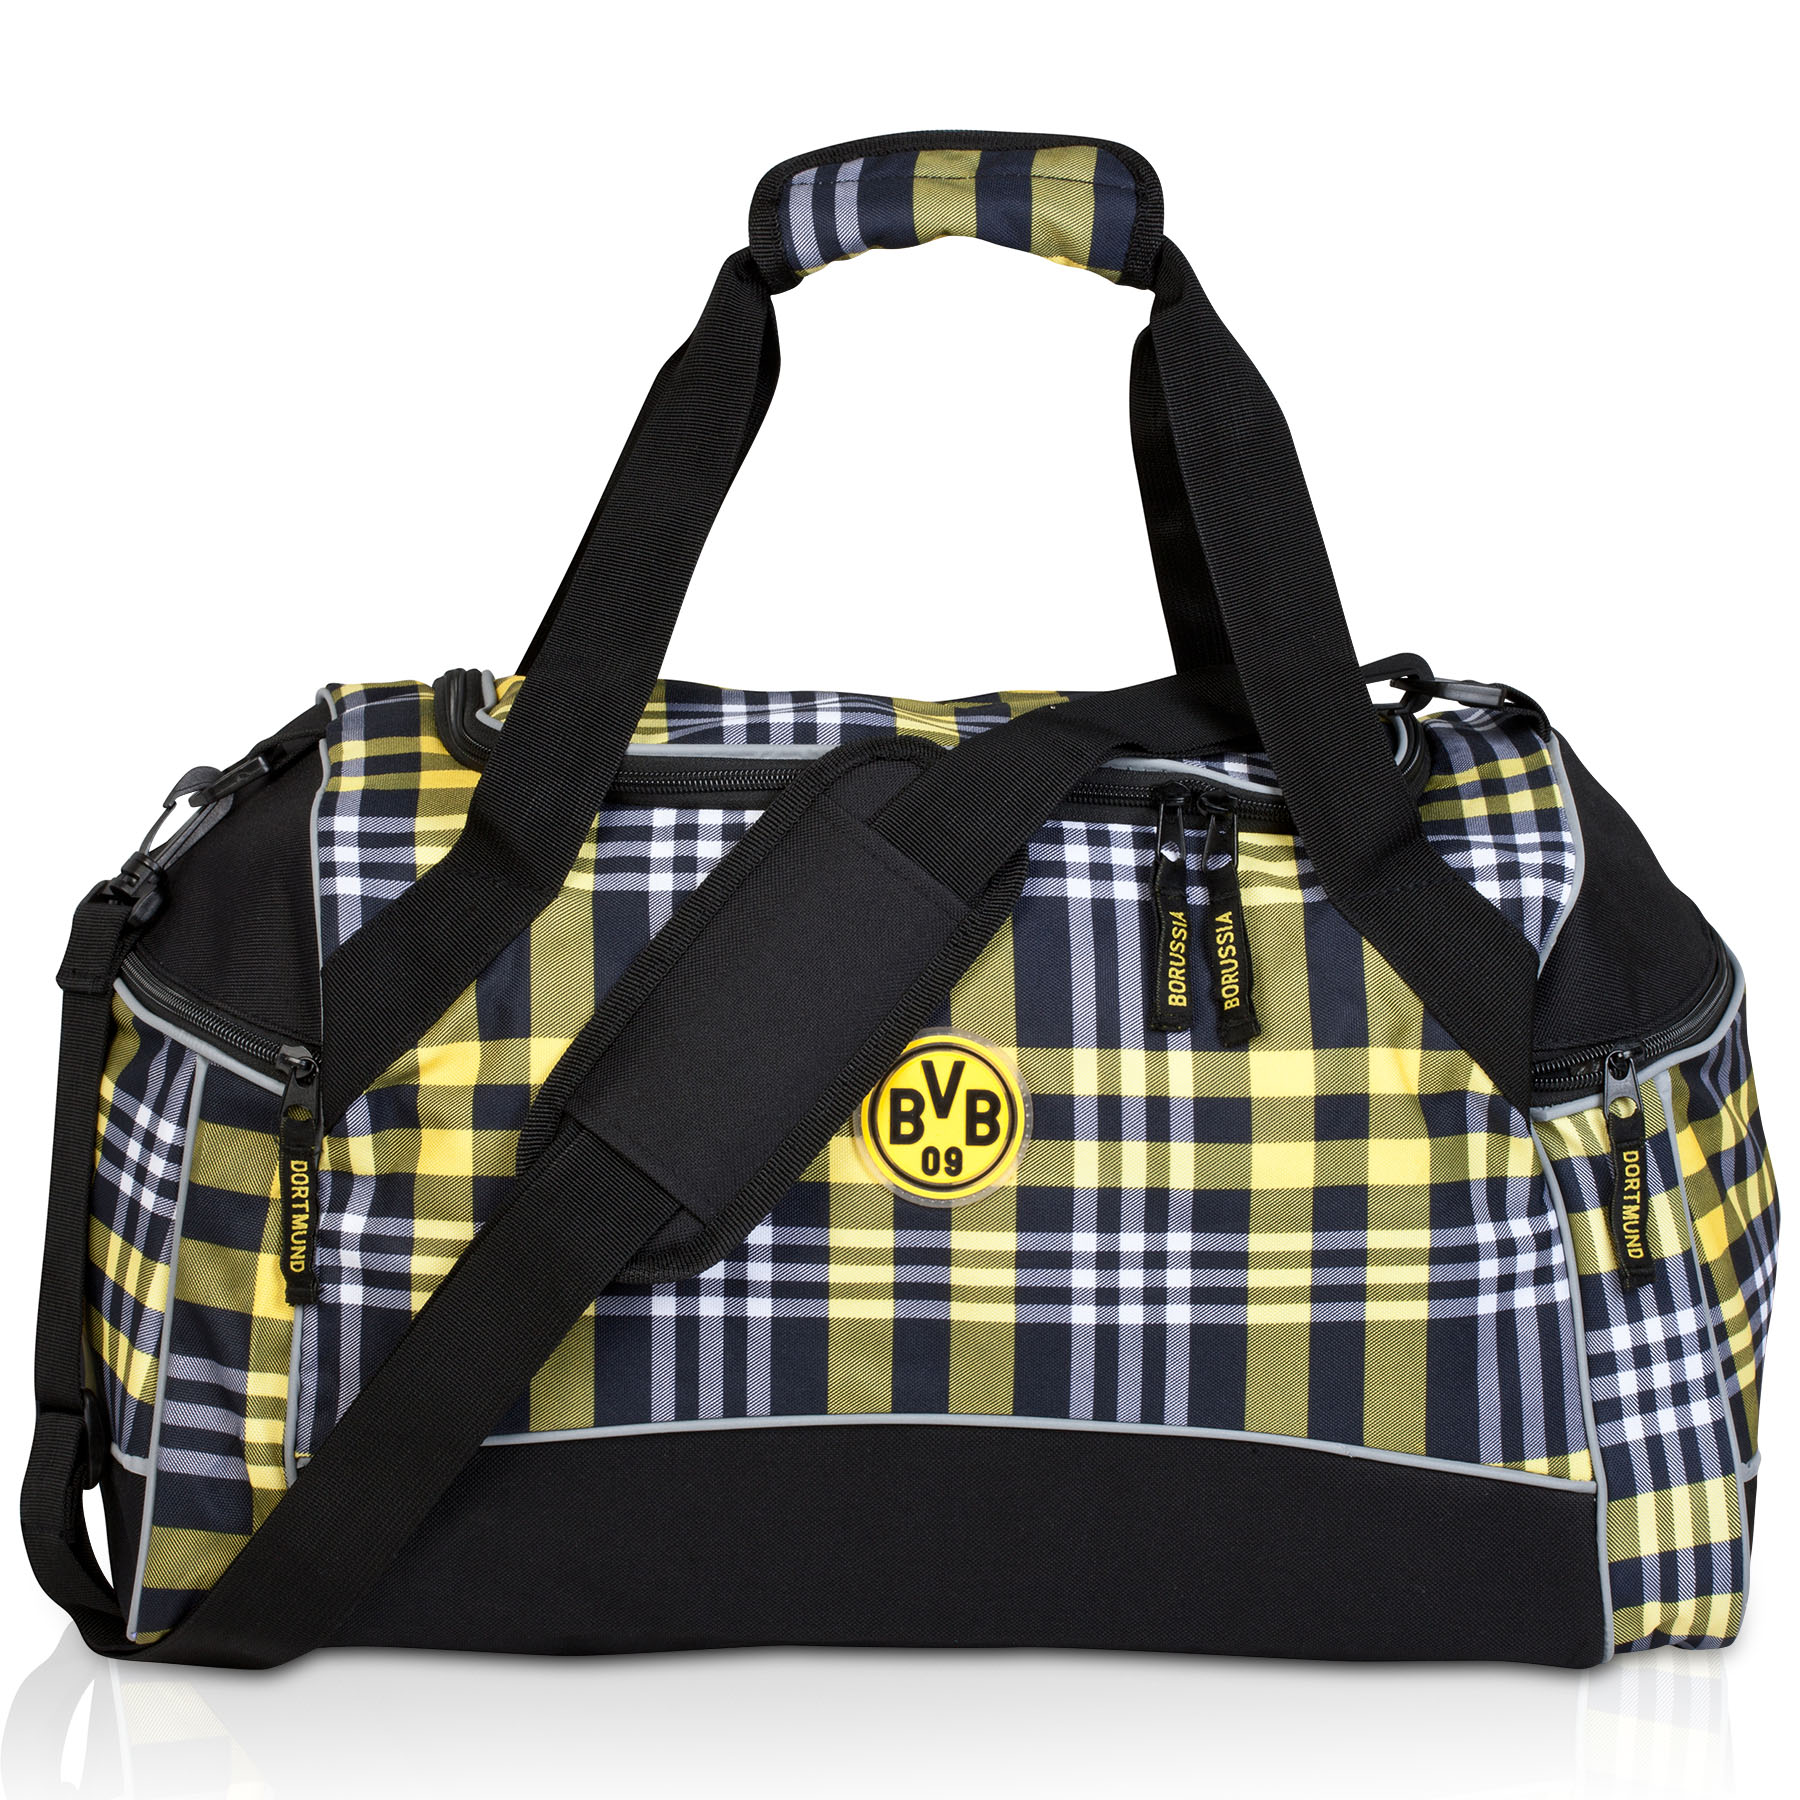 BVB Plaid Sports Bag